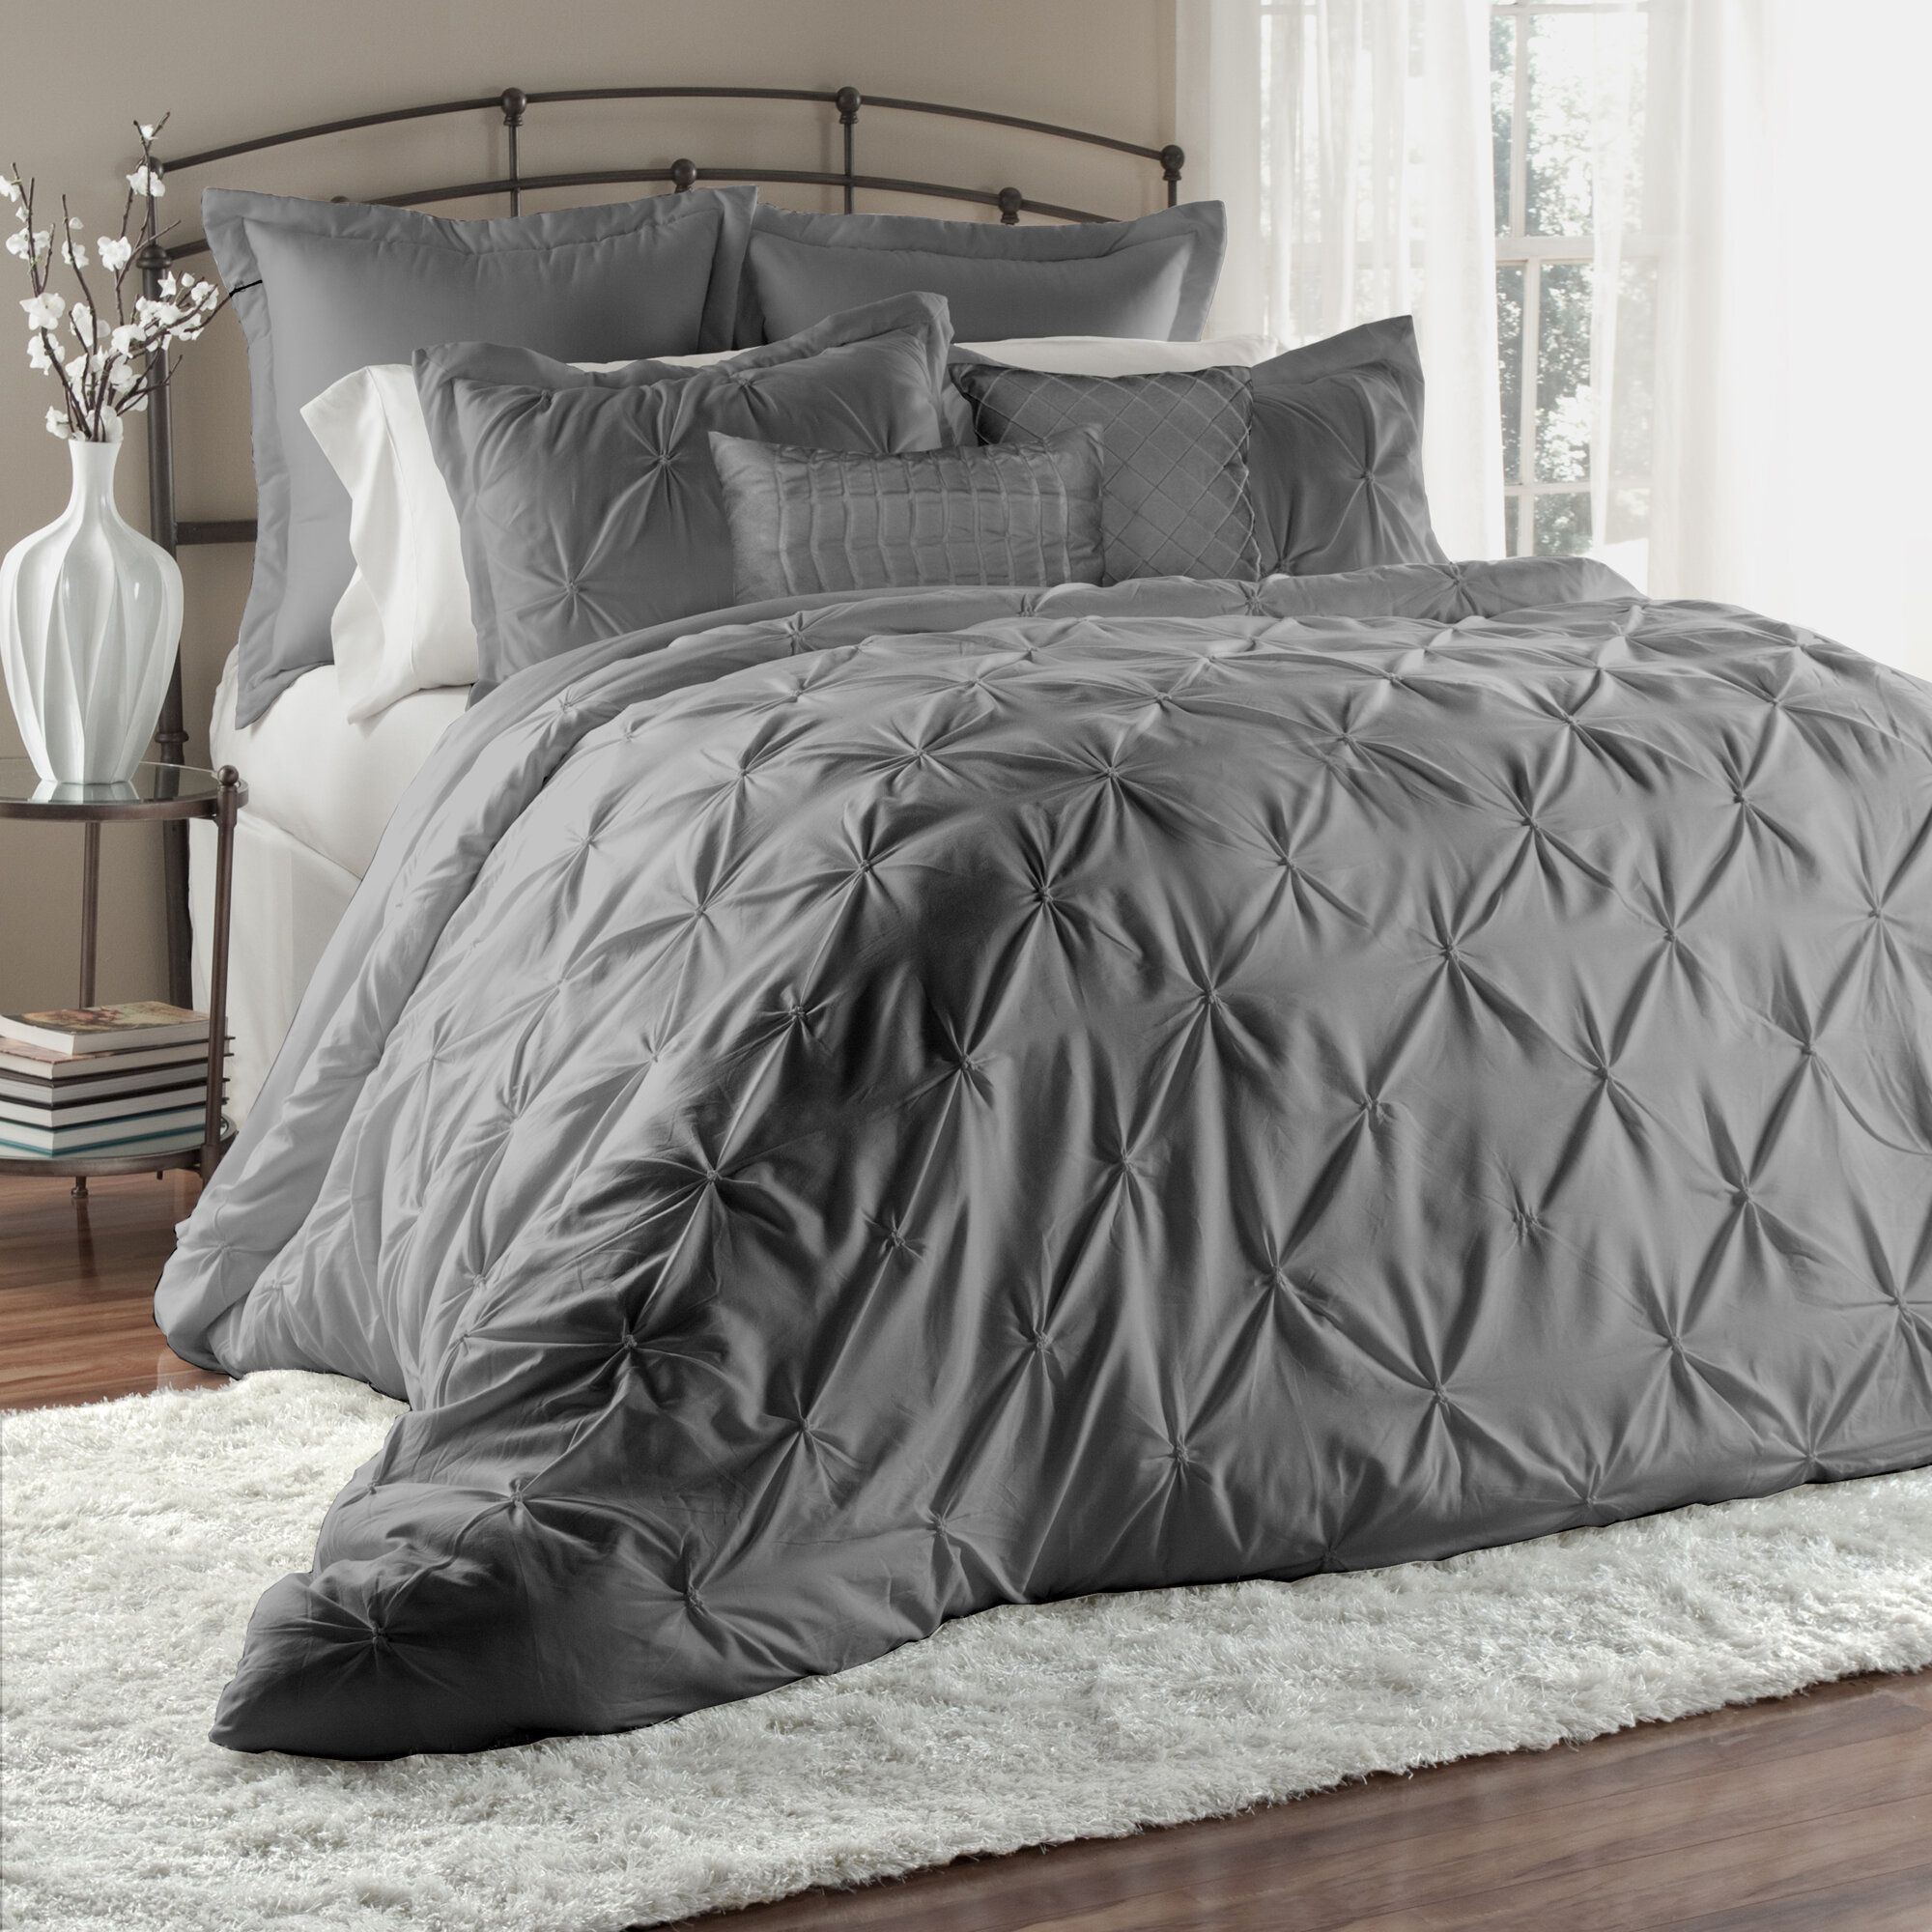 bedspread comforter bedding ruffle overstock product free matte serent today shipping bath satin set